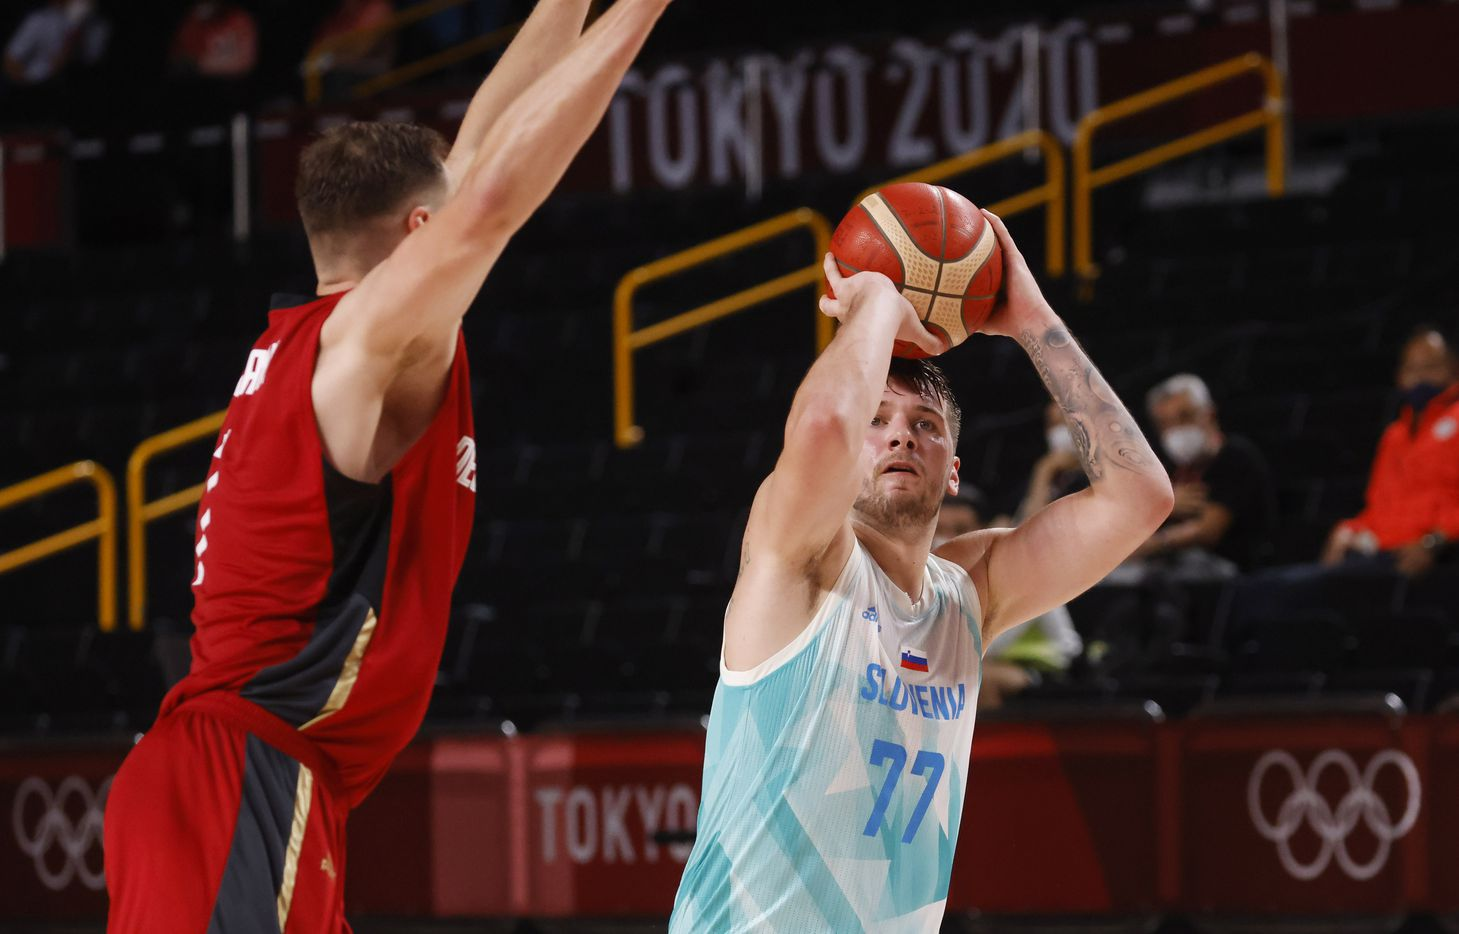 Slovenia's Luka Doncic (77) shoots over Germany's Johannes Voigtmann (7) during the second half of play of a quarter final basketball game at the postponed 2020 Tokyo Olympics at Saitama Super Arena, on Tuesday, August 3, 2021, in Saitama, Japan. Slovenia defeated Germany's 94-70. (Vernon Bryant/The Dallas Morning News)